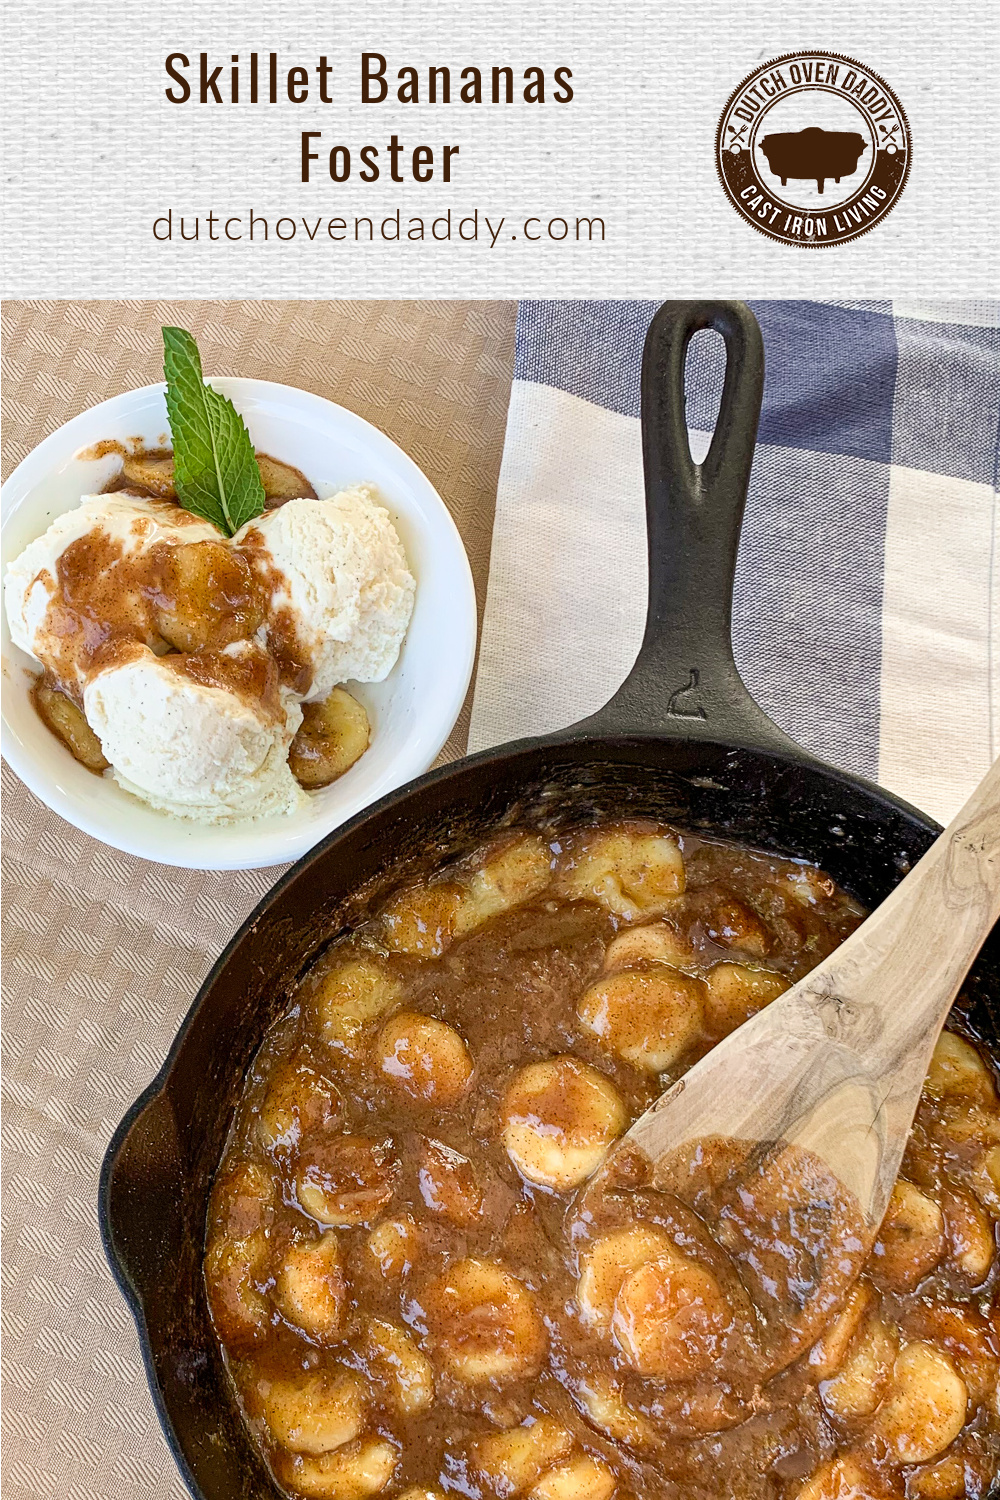 Branded image of bananas foster in the skillet with a portion plated over vanilla ice cream in a white bowl garnished with fresh mint.